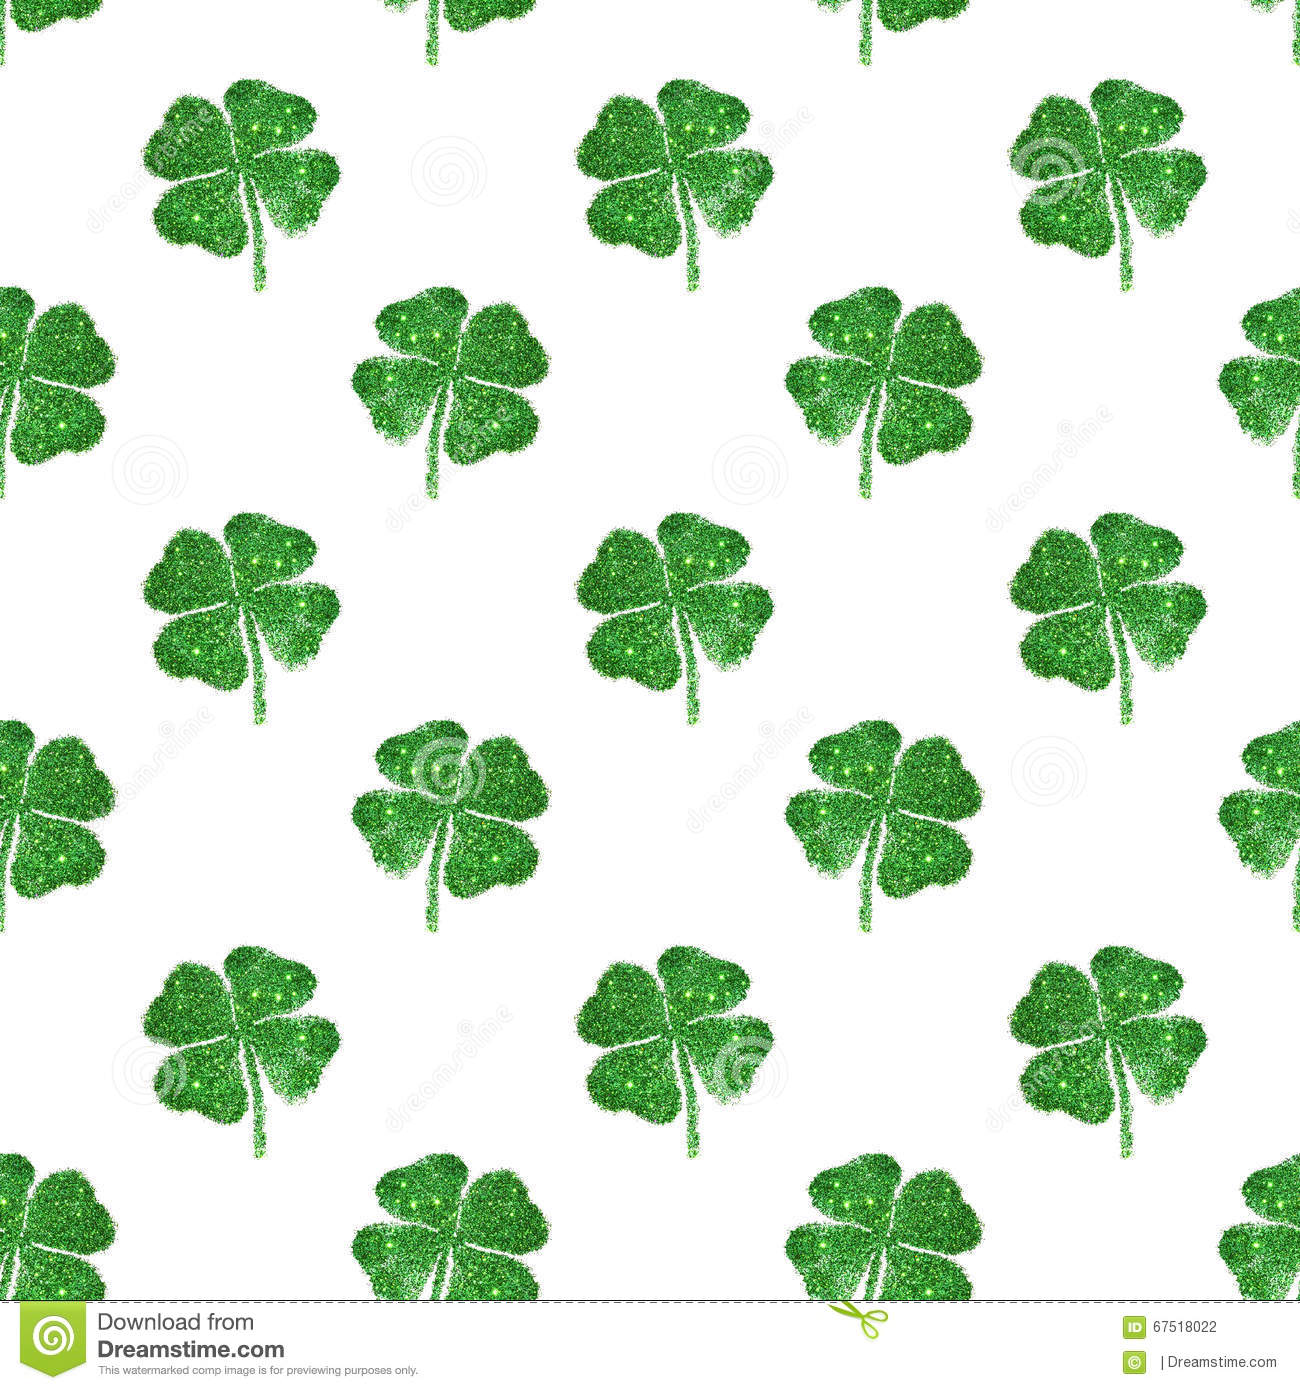 seamless pattern of abstract four leaf clovers of green glitter